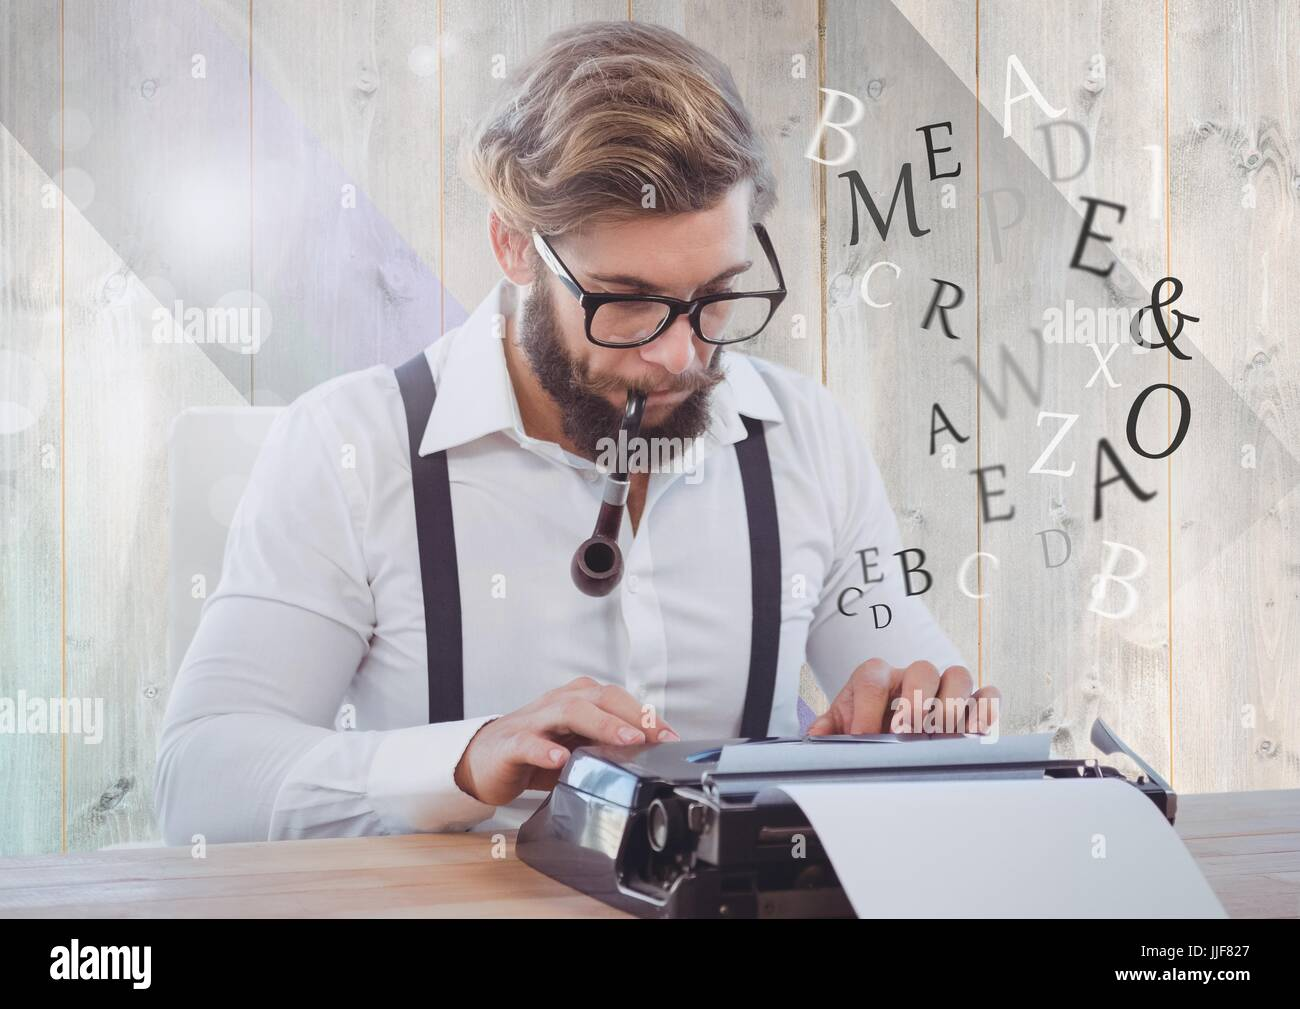 Digital composite of Hipster man  on typewriter with letters - Stock Image